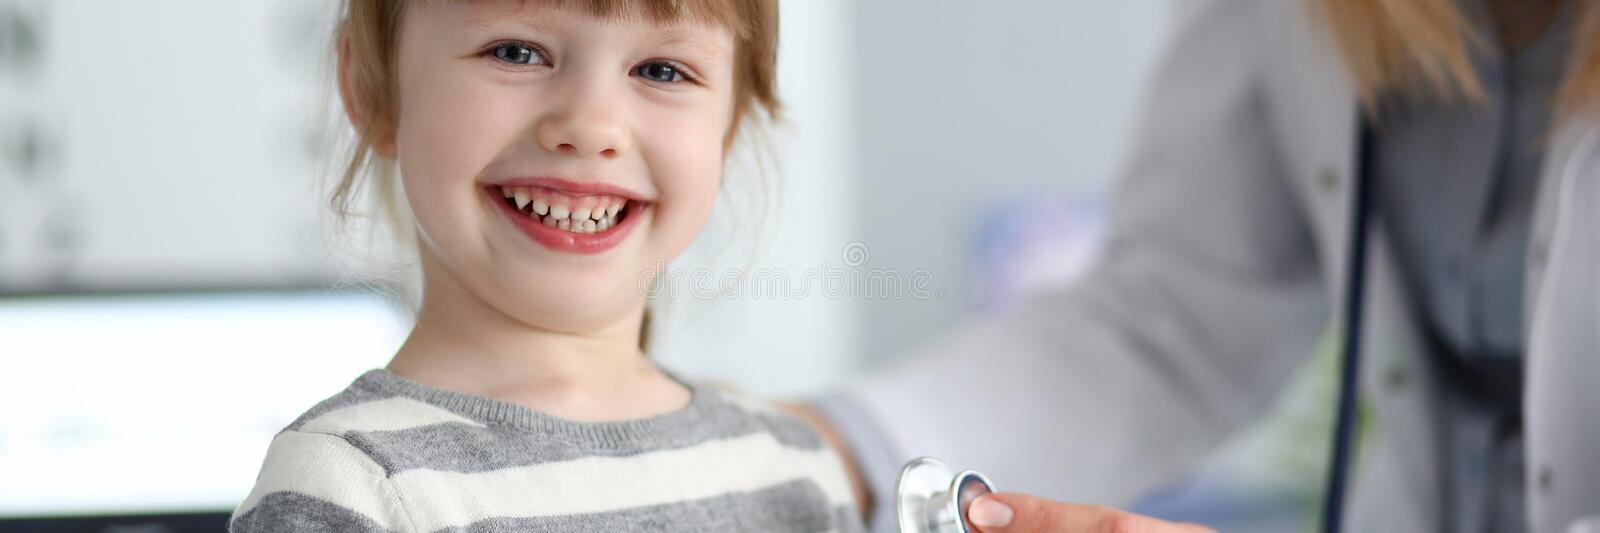 Smiling cute little girl with doctor measuring heart beat with stethoscope royalty free stock photos